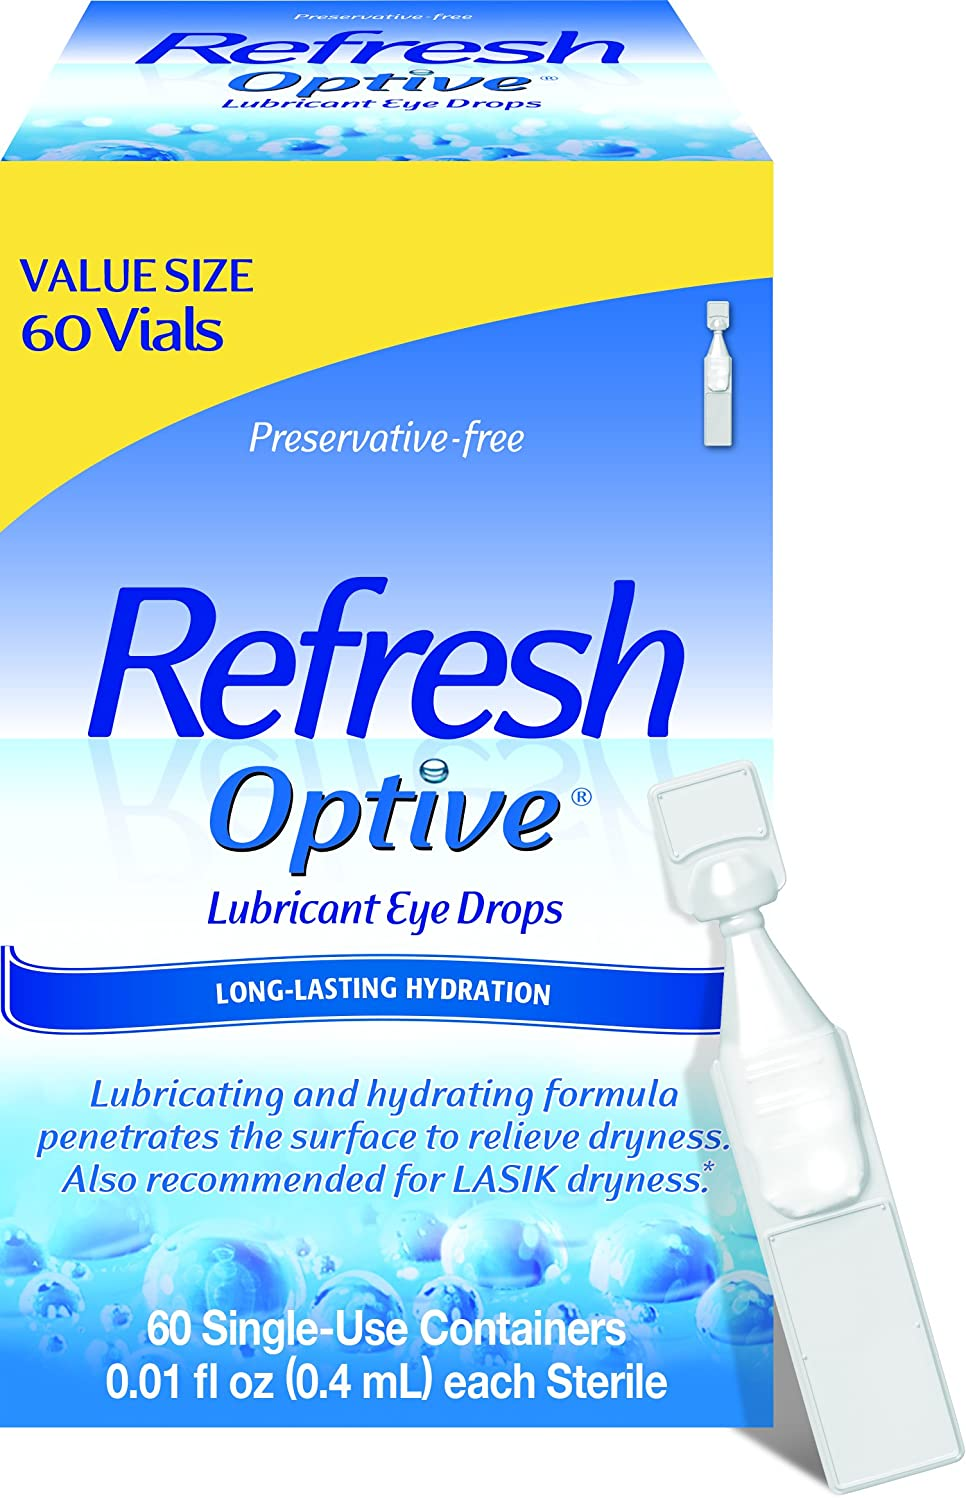 Refresh Optive Lubricant Eye Drops, 60 Single-Use Containers, 0.01 fl oz (0.4mL) each Sterile